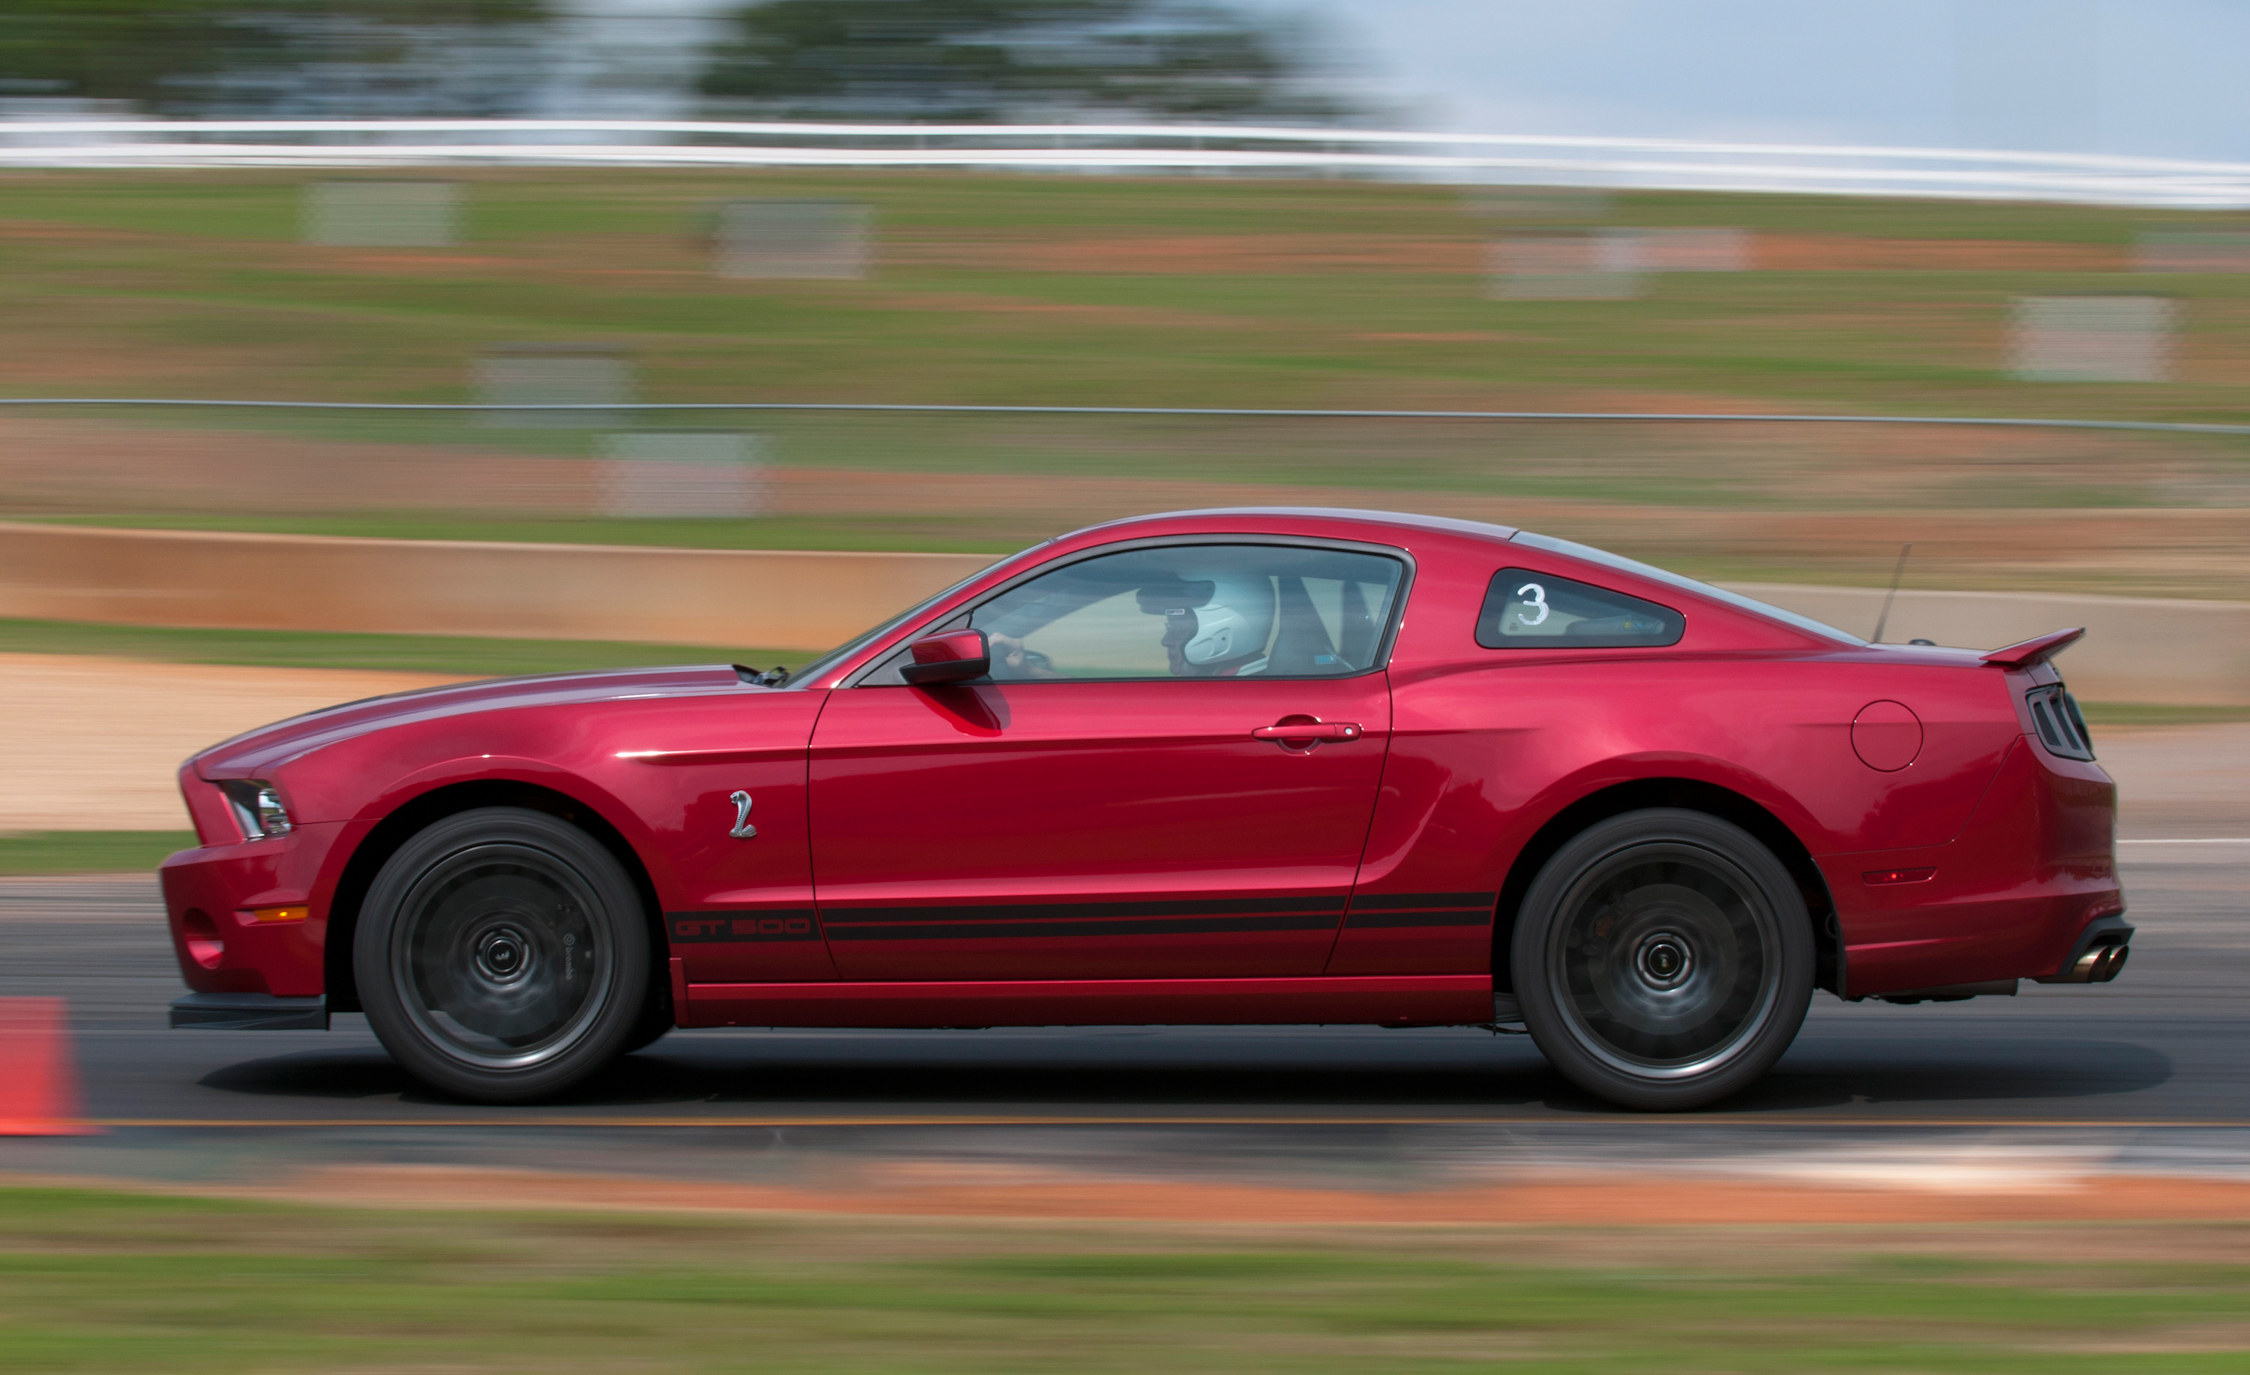 2013 Ford Mustang Shelby GT500 Red Test Drive Side View (View 12 of 47)